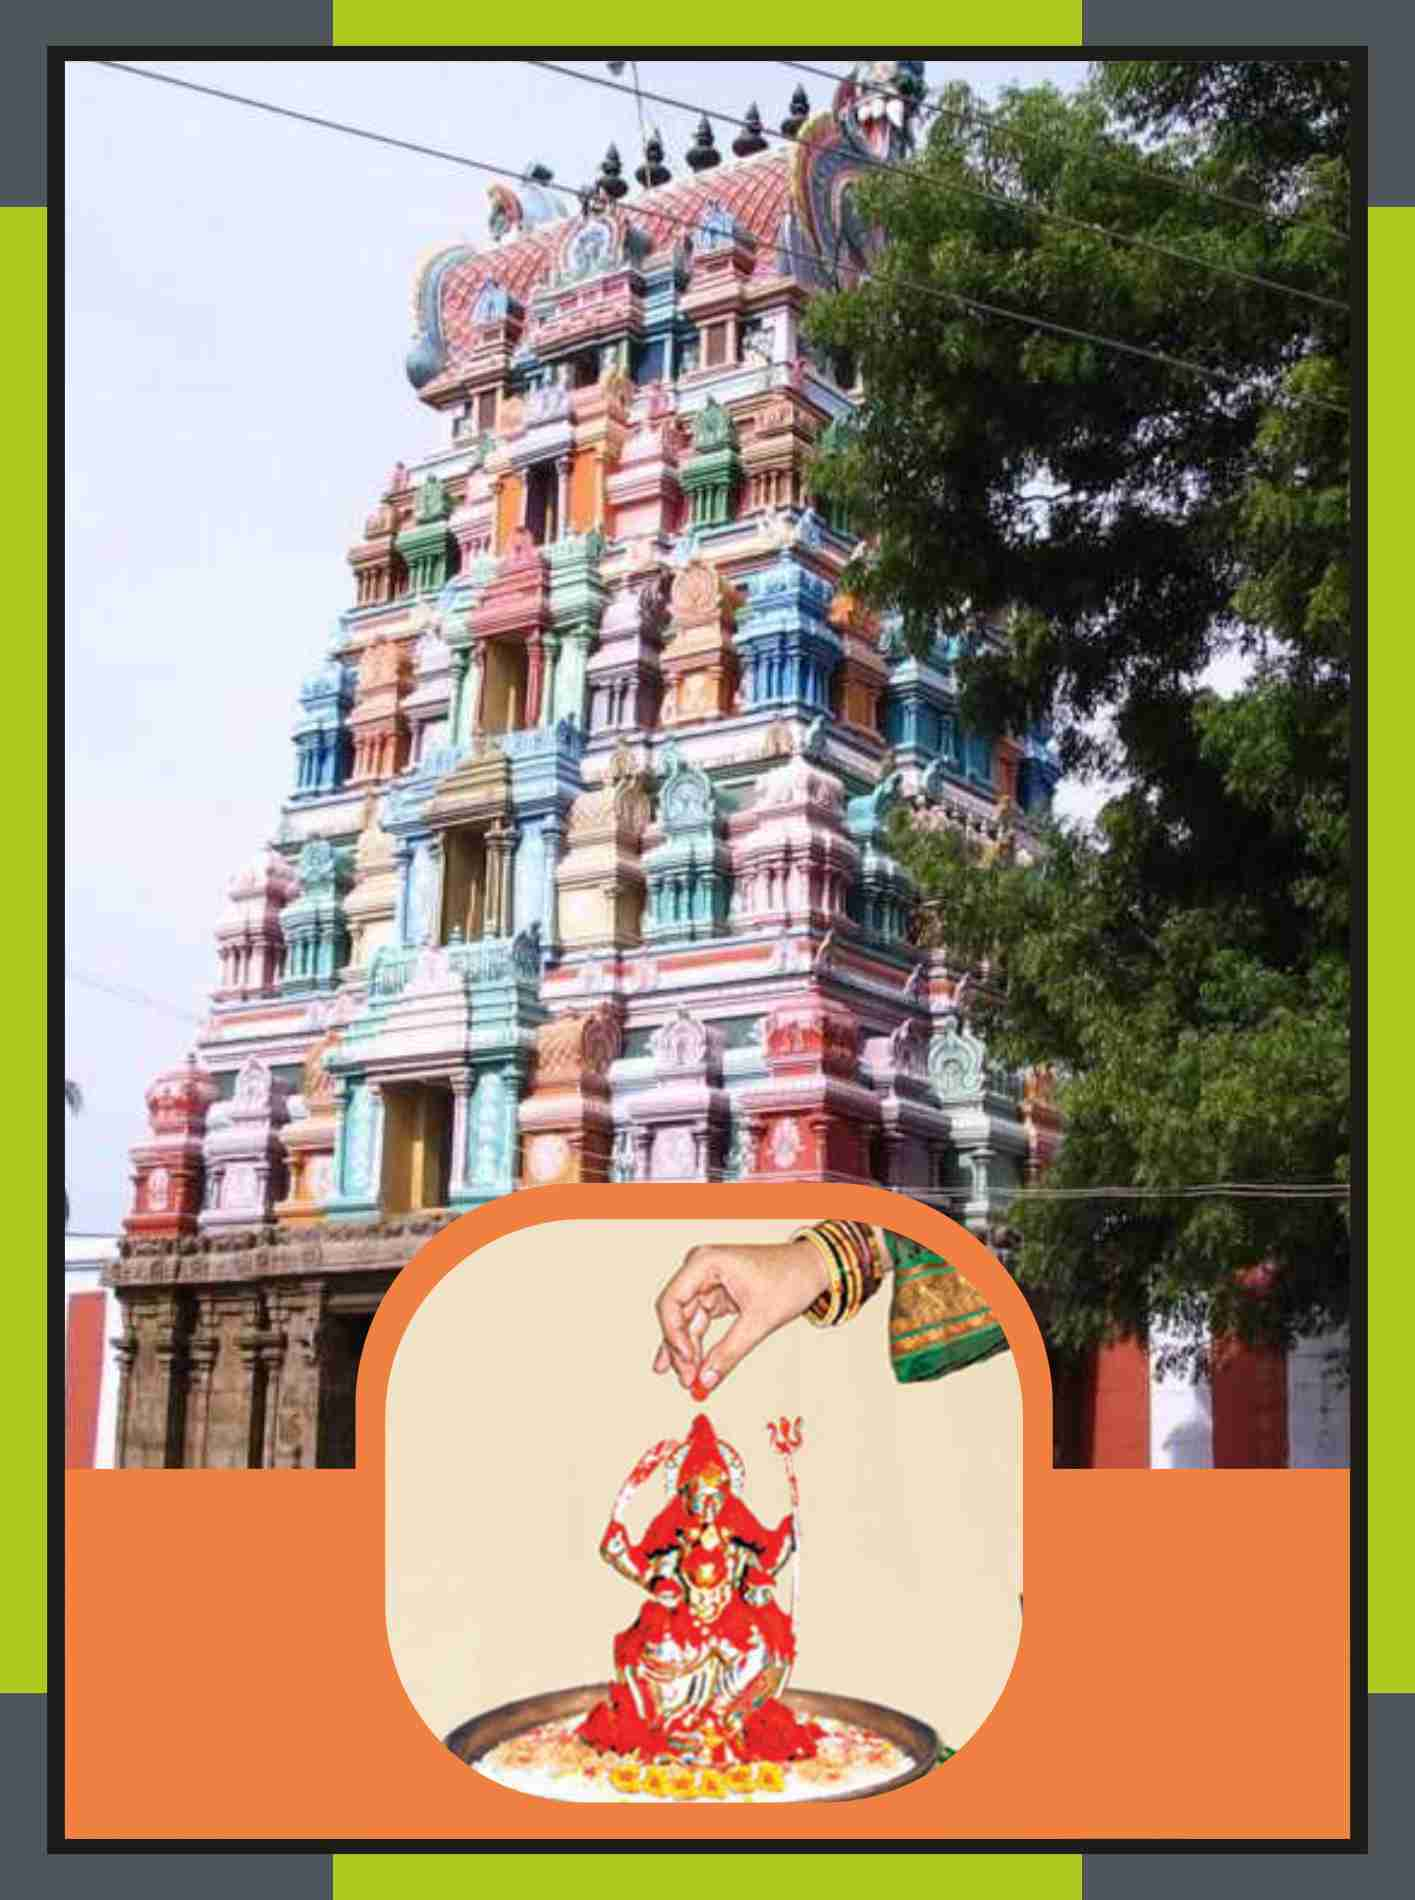 Cheranmadevi - Ammainathar Temple Spl Puja for Swami and Ambal